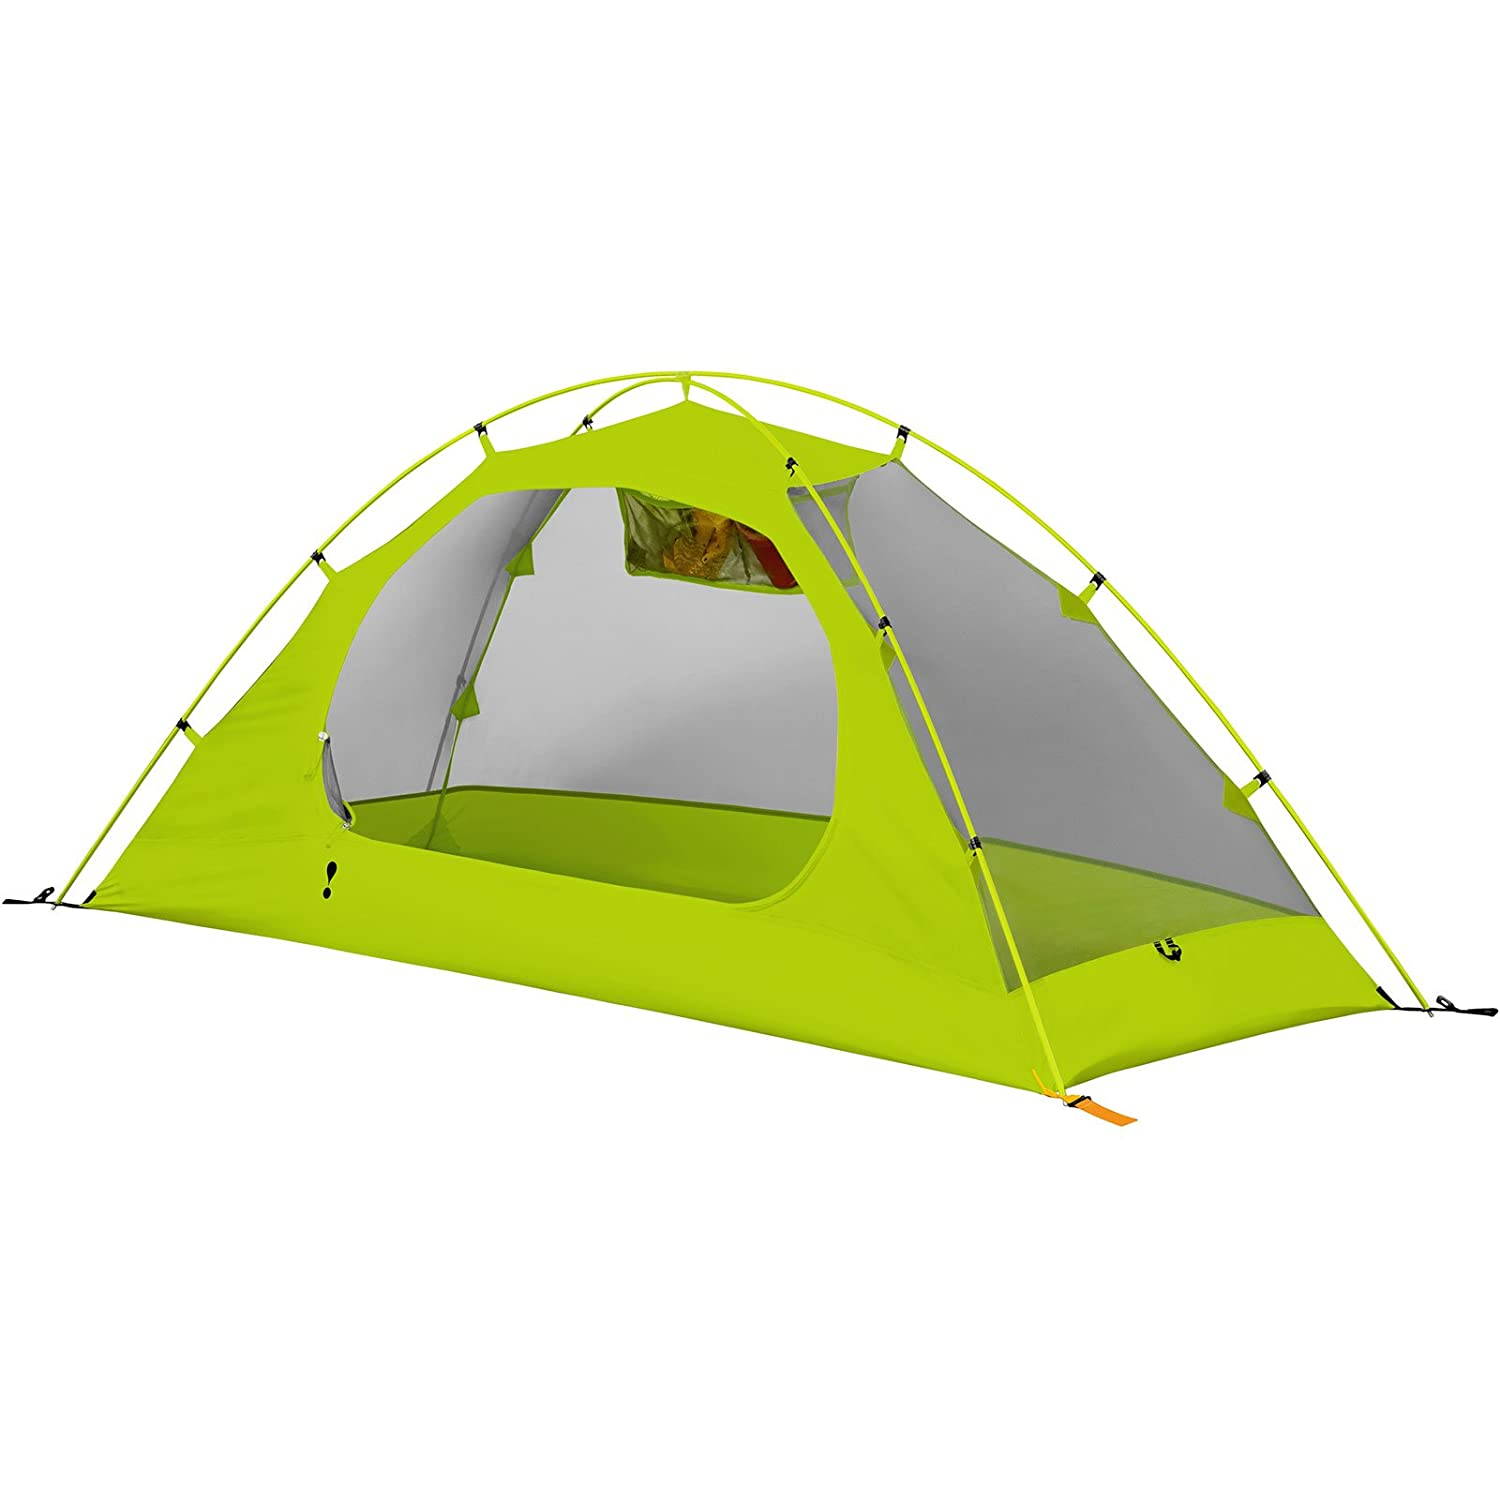 Amazon.com  Eureka Midori Solo - 1 Person Tent  Backpacking Tents  Sports u0026 Outdoors  sc 1 st  Amazon.com & Amazon.com : Eureka Midori Solo - 1 Person Tent : Backpacking ...